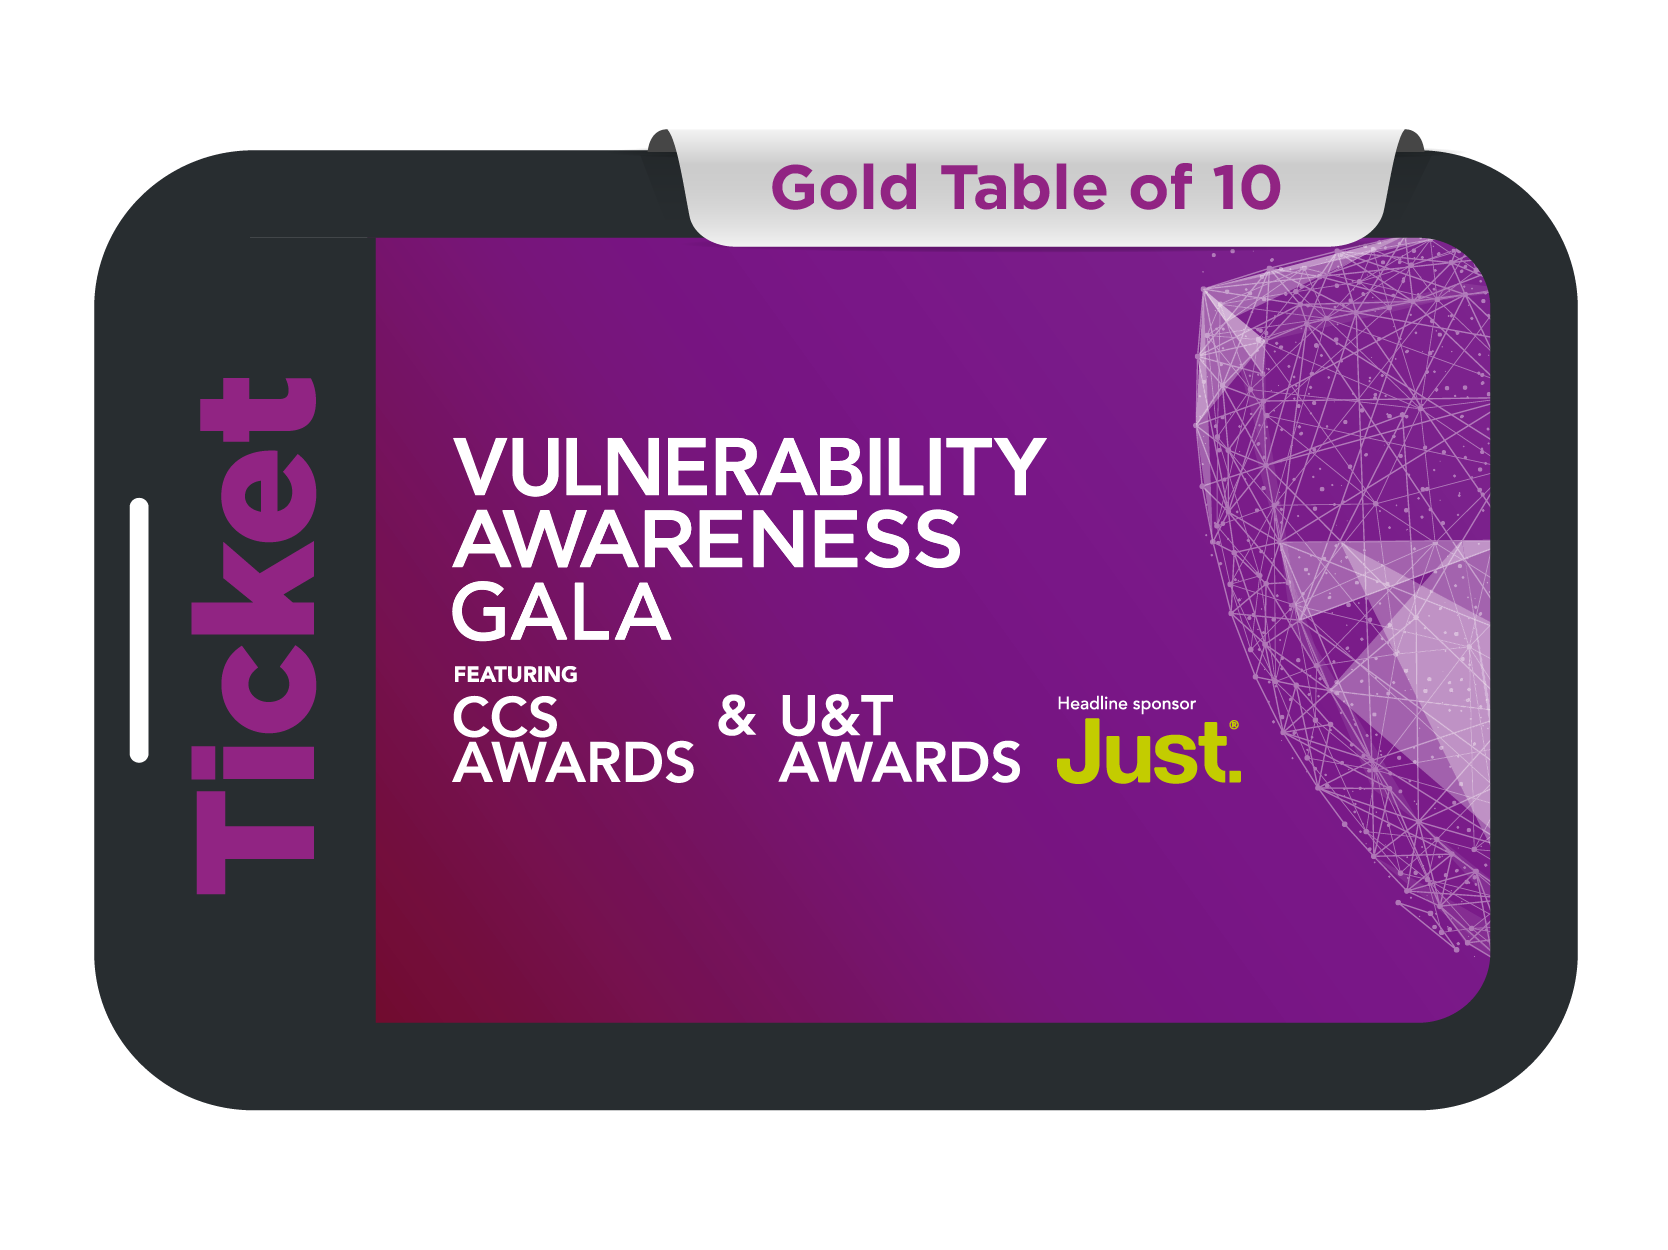 Gold Table of 10 - Vulnerability Awareness Gala feat. CCS and U&T Awards 2021